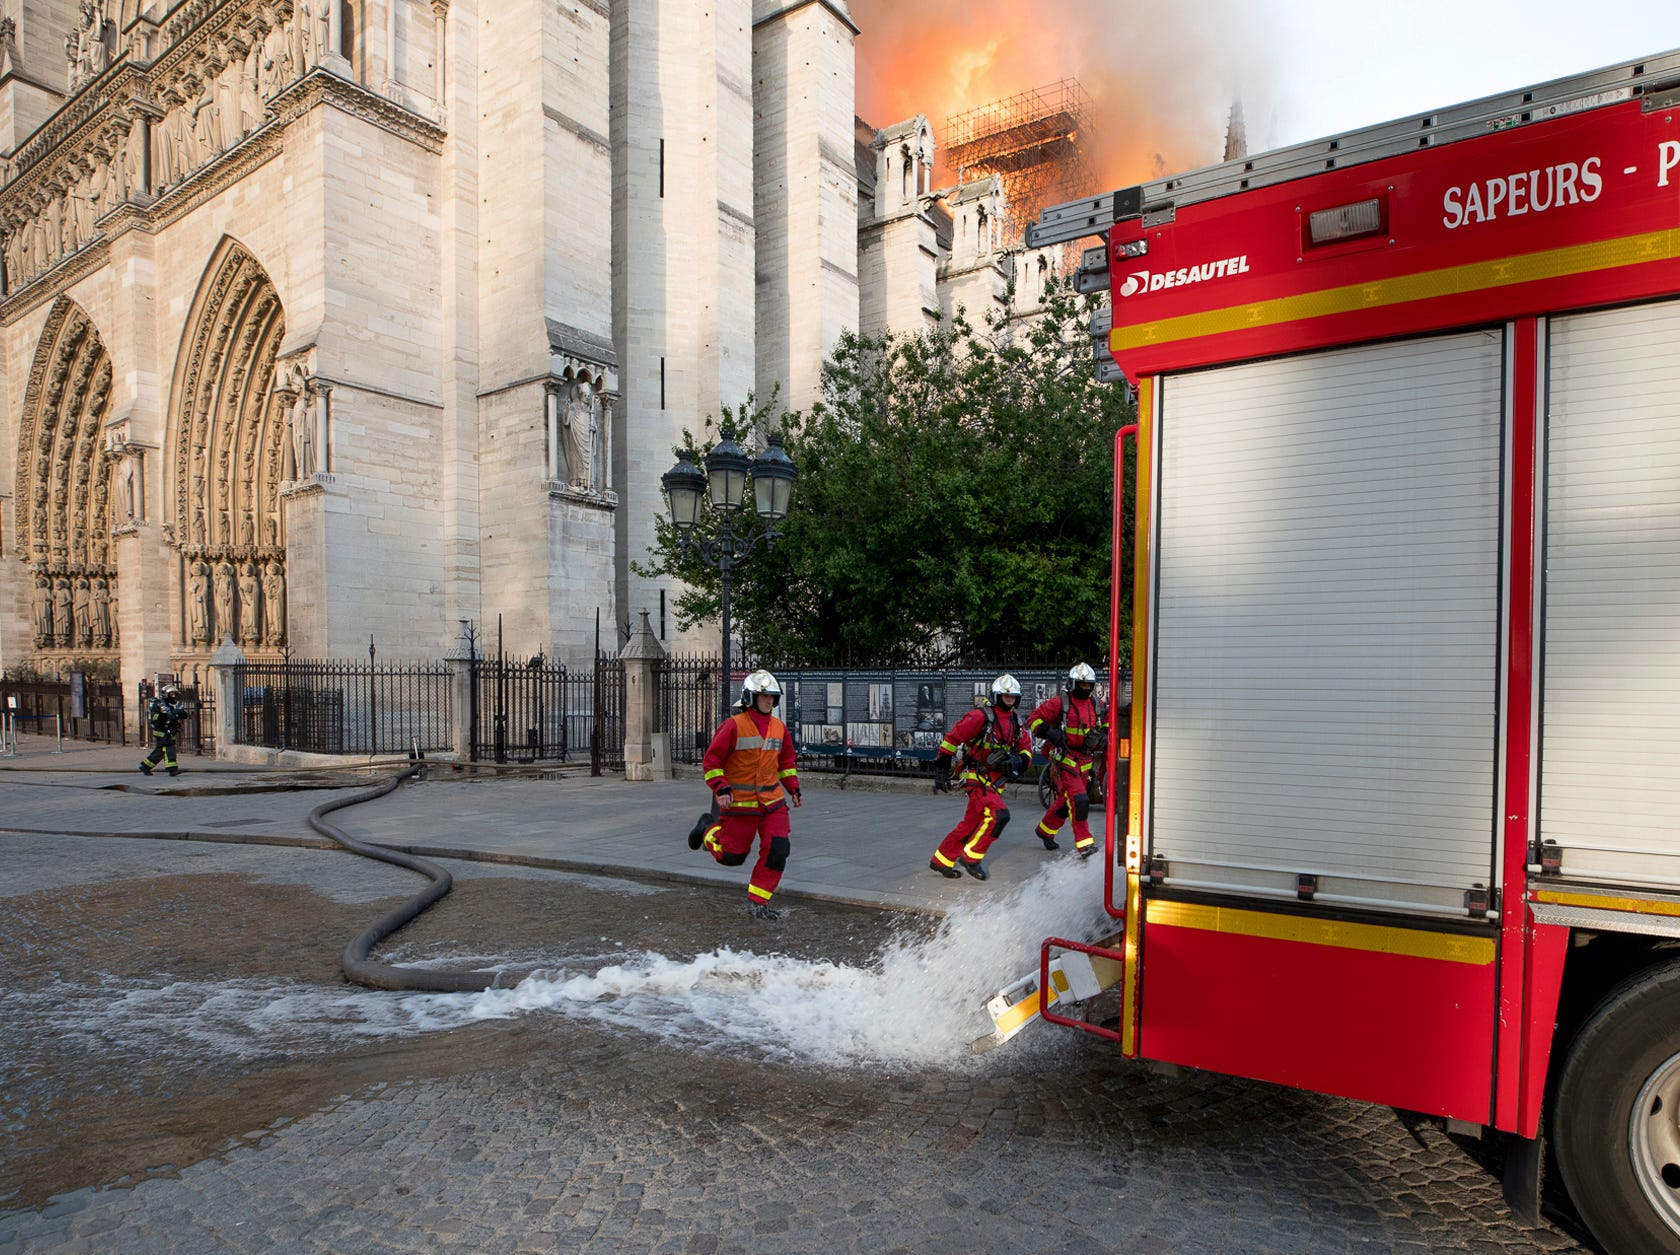 This photo provided Tuesday April 16, 2019 by the Paris Fire Brigade shows fire fighters running near the burning Notre Dame cathedral, Monday April 15, 2019. Experts assessed the blackened shell of Paris' iconic Notre Dame Tuesday morning to establish next steps to save what remains after a devastating fire destroyed much of the cathedral that had survived almost 900 years of history. (Benoit Moser, BSPP via AP)